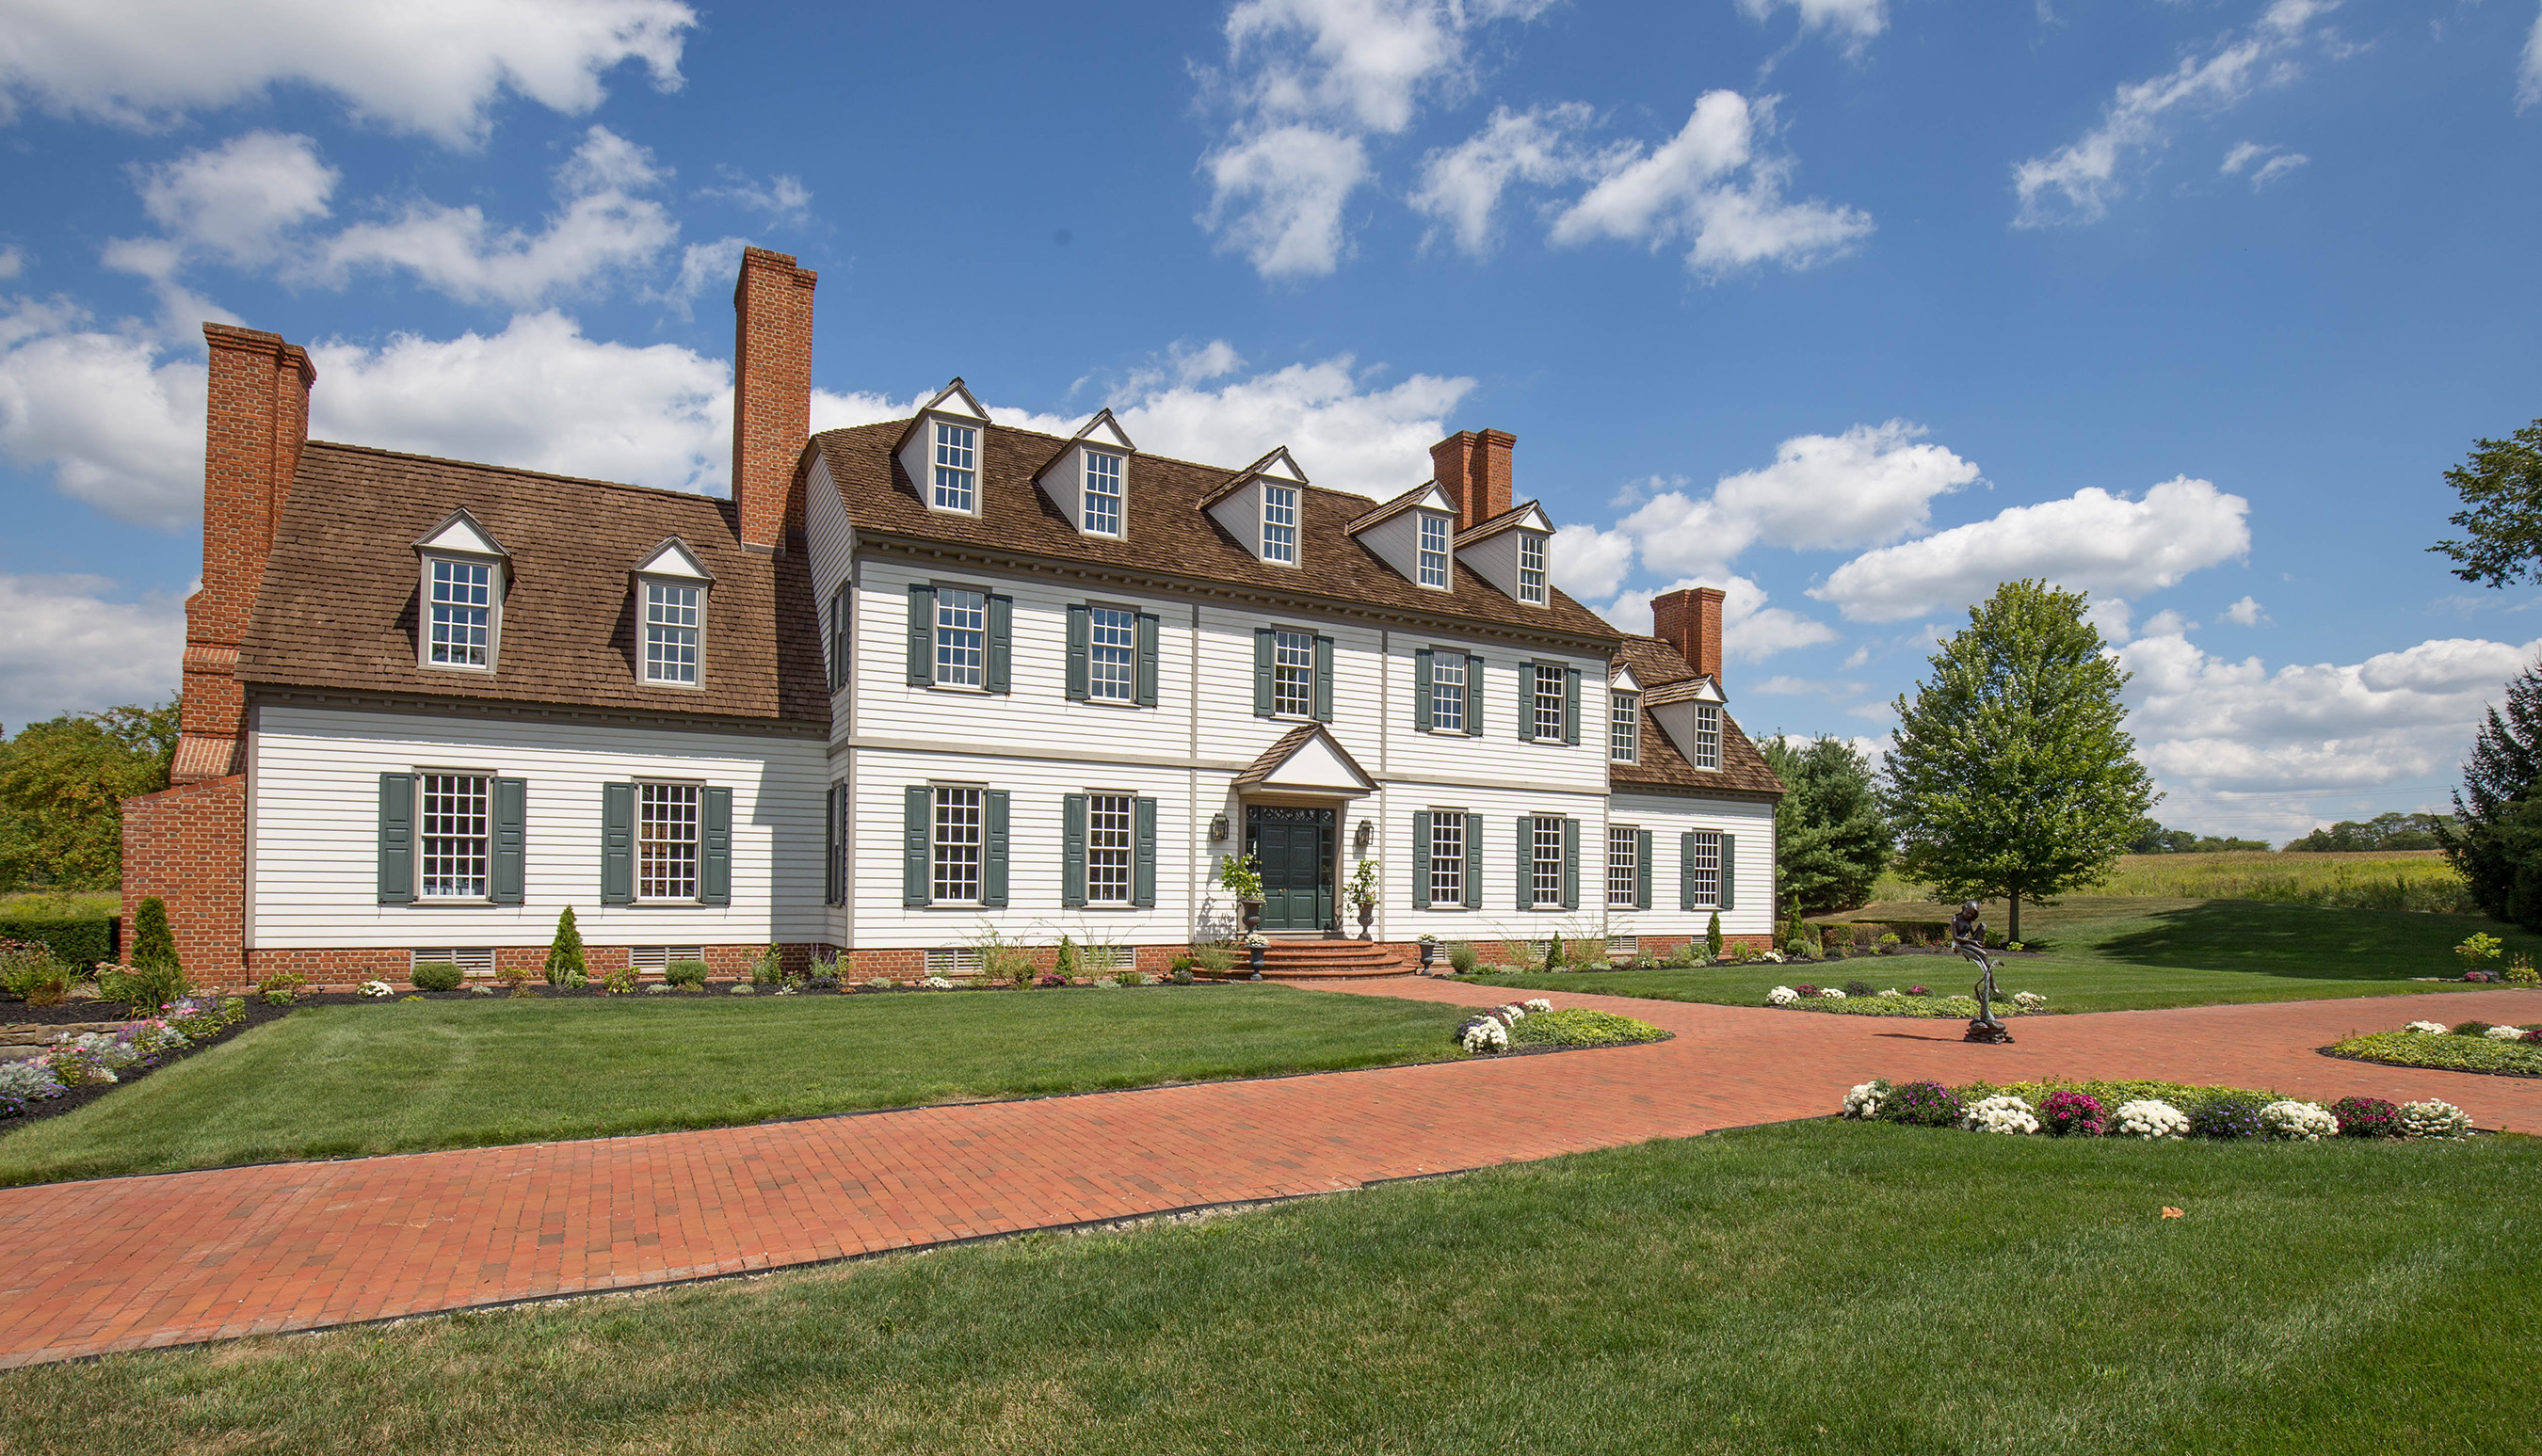 Unprecedented Luxury Auction of Stunning Colonial Mansion Selling with No Reserve on November 5th